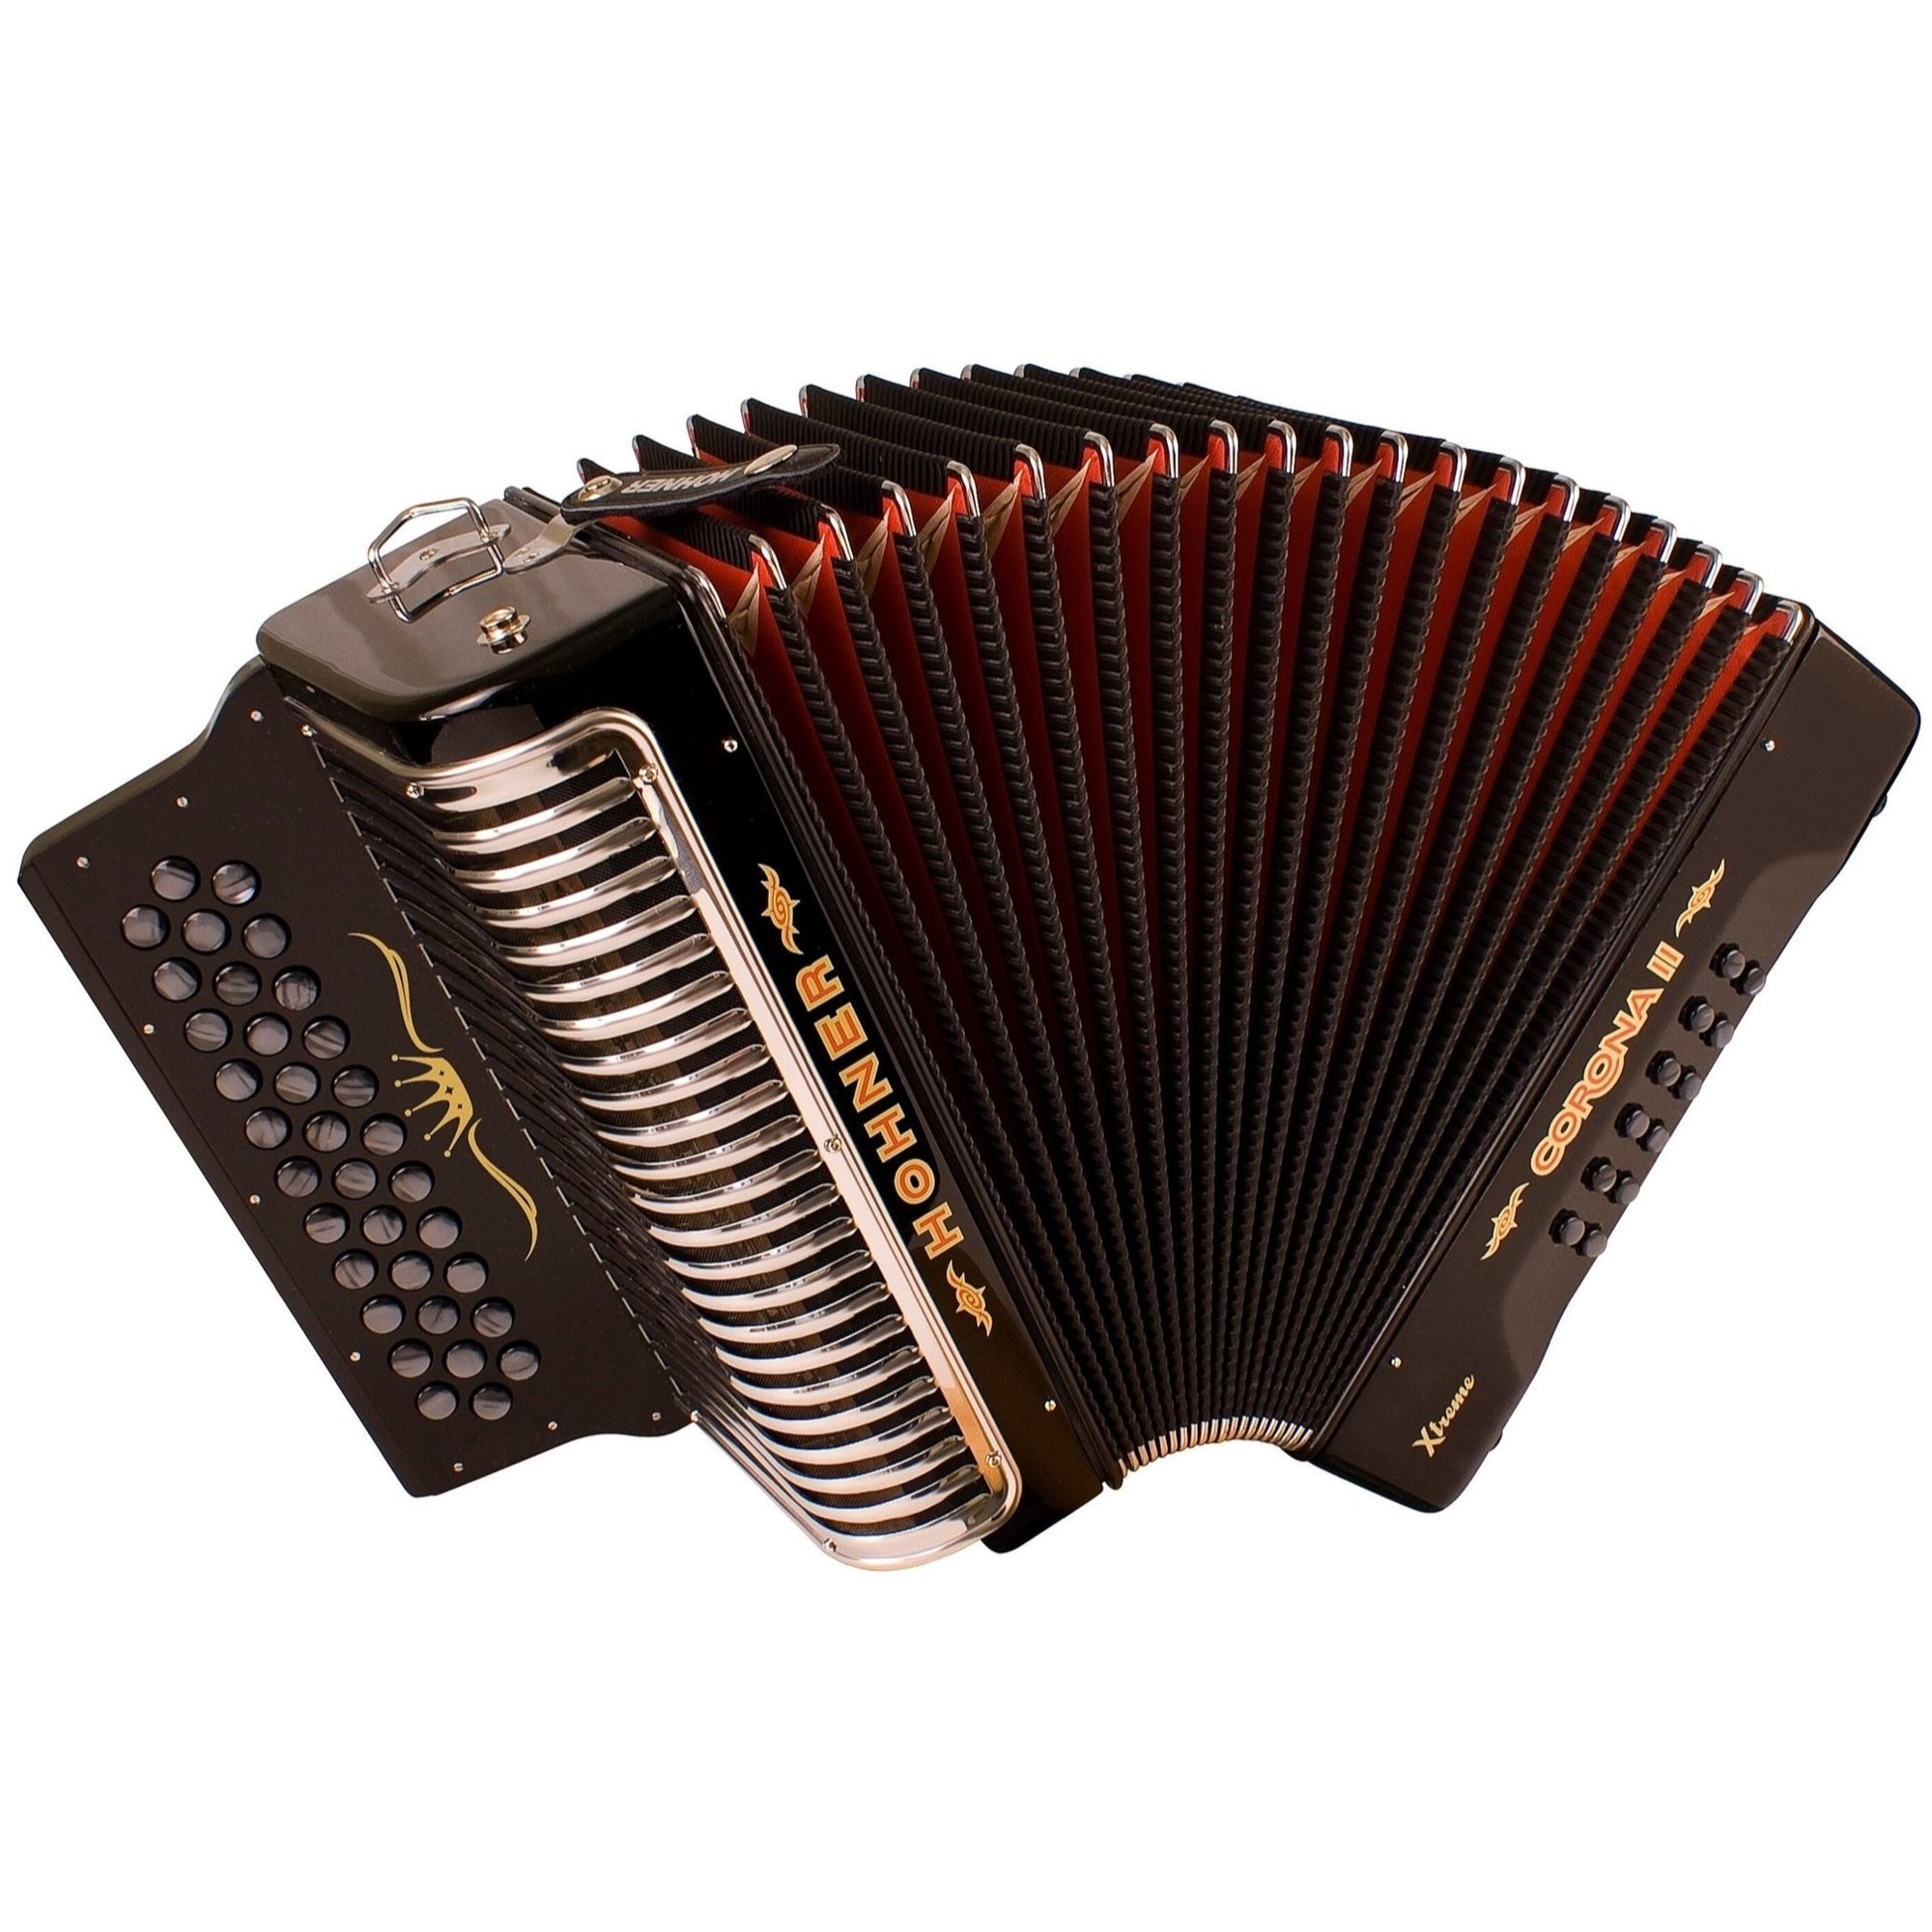 Hohner CXG Corona II Xtreme Accordion, Jet Black, G/C/F